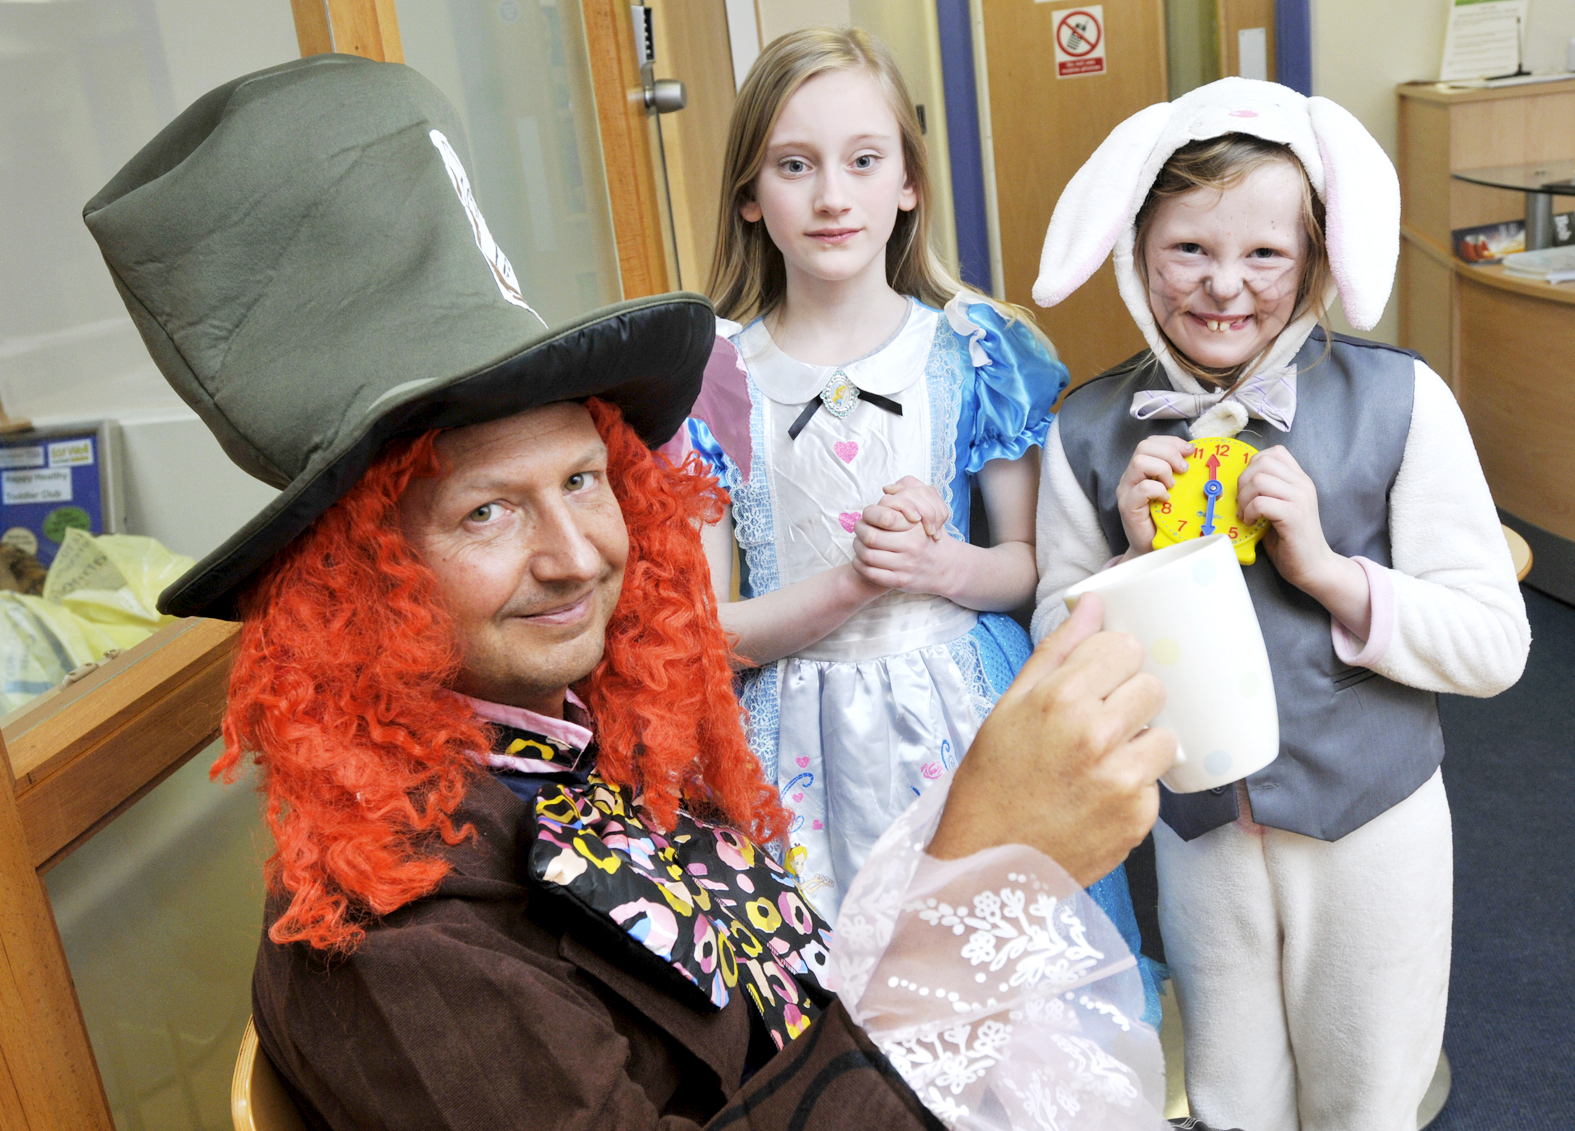 Washacre Primary School's business manager Carl Messenger with Amber Halliwell-Cliff and Tabatha Gilroy-Roberts